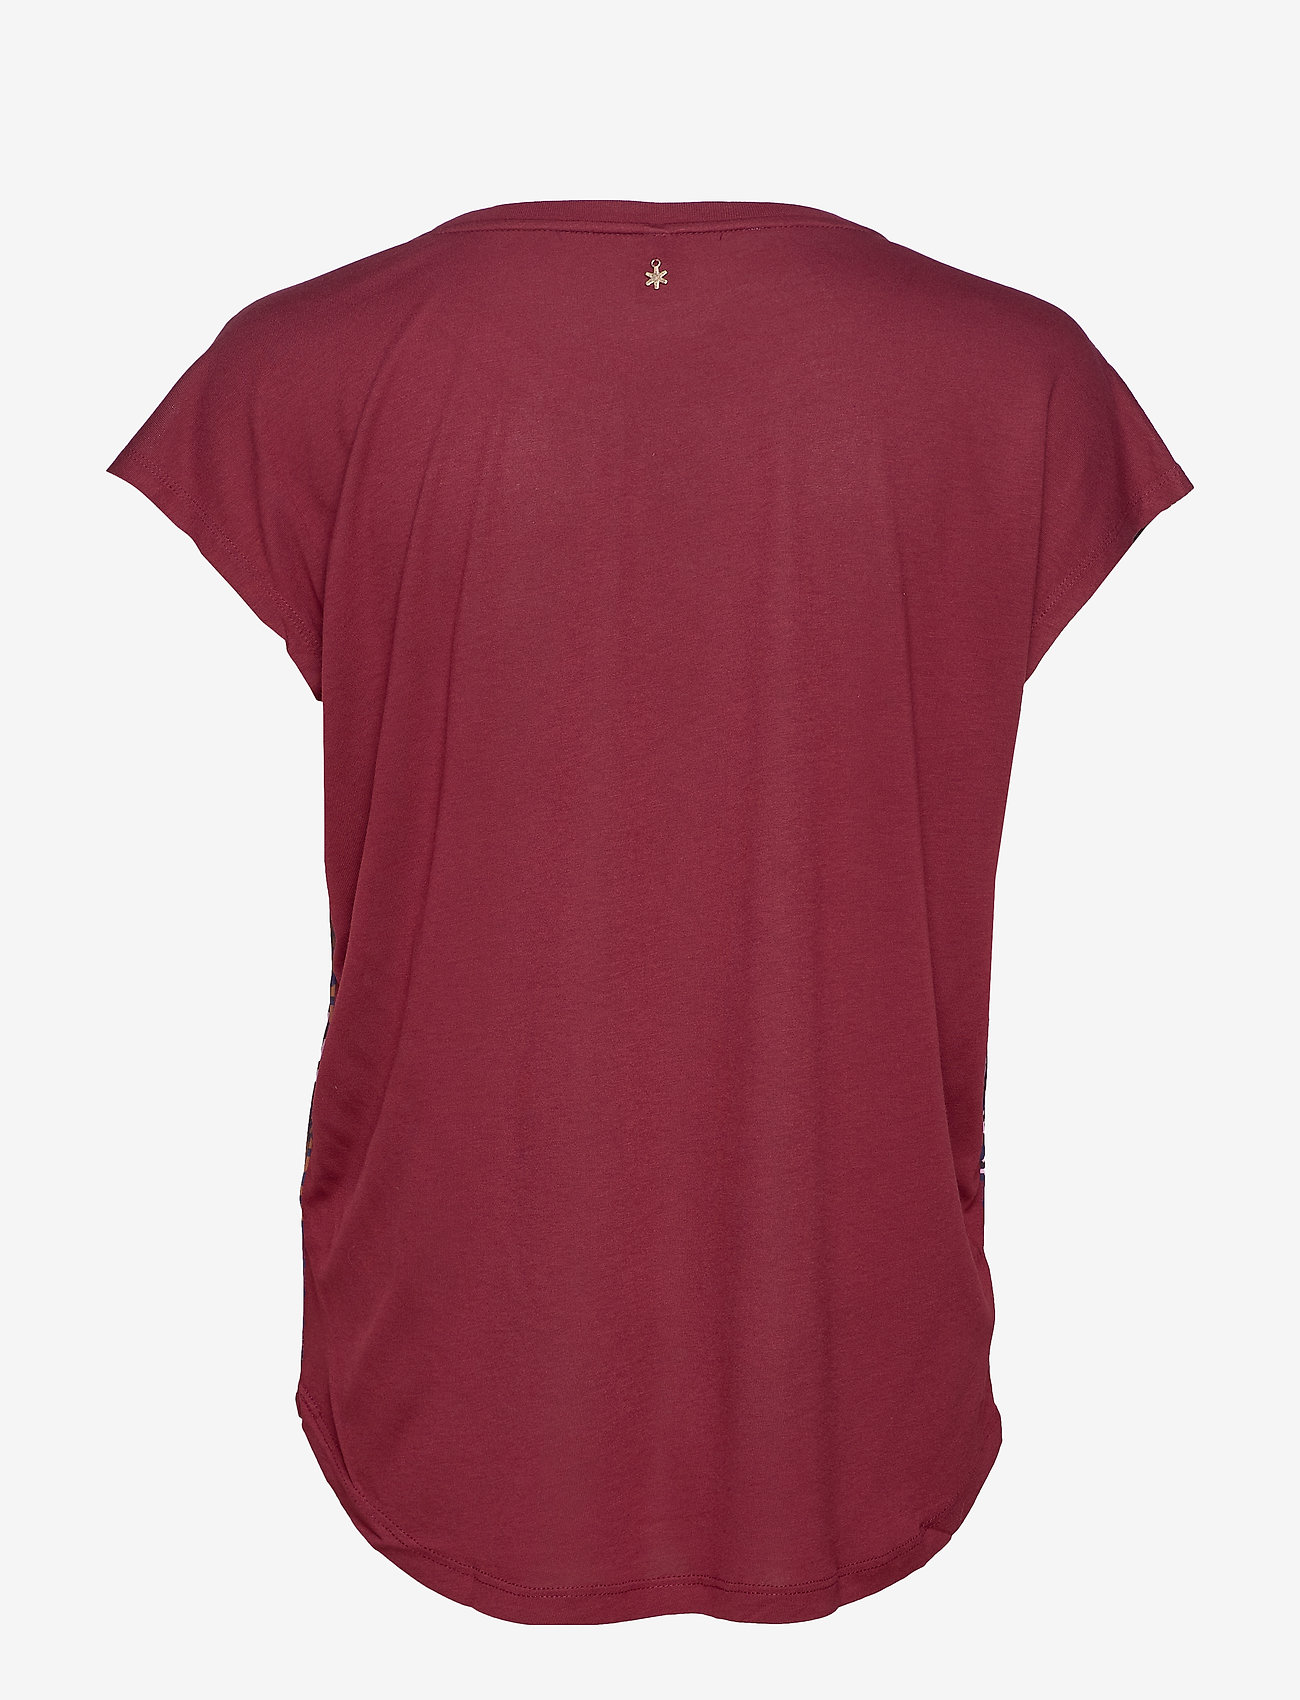 Cupolly Capsleeve (Cabernet) - Culture pvlMGD